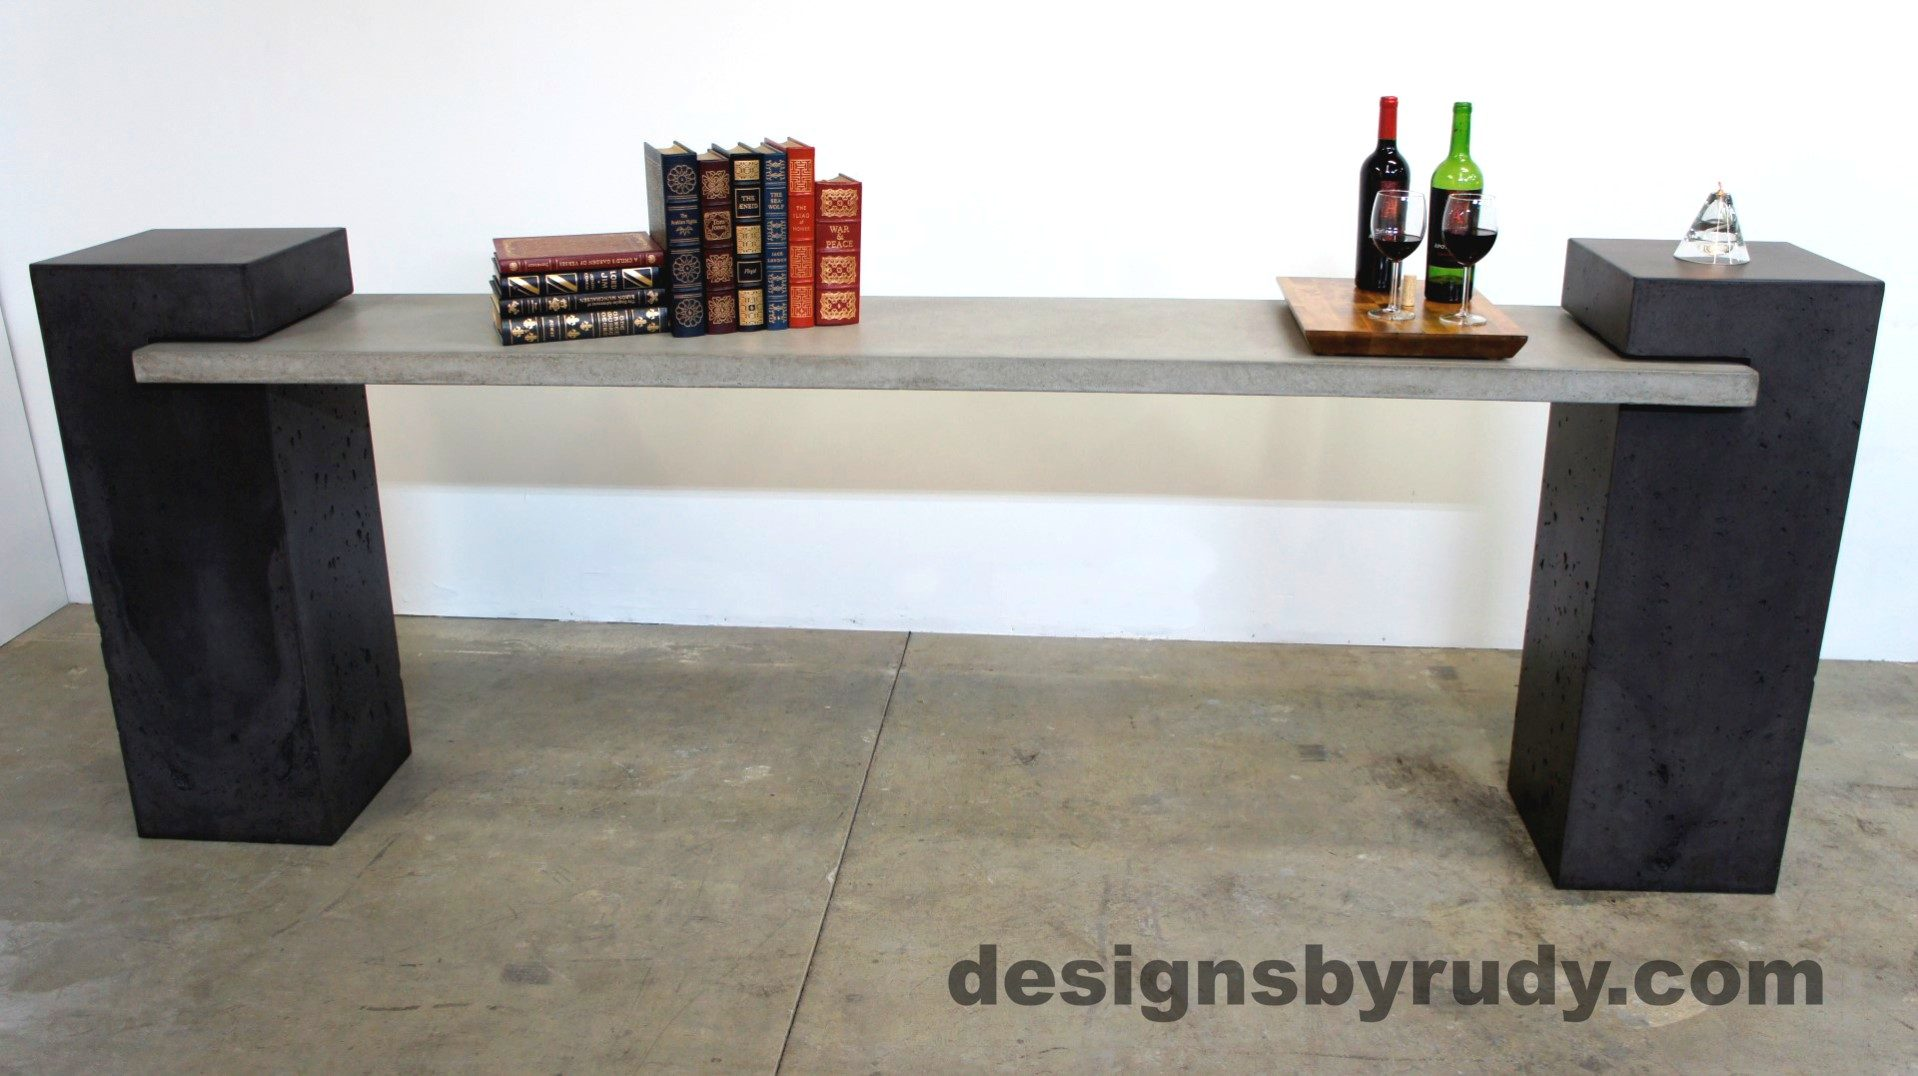 Front view of a concrete buffet table designed by Designs by Rudy